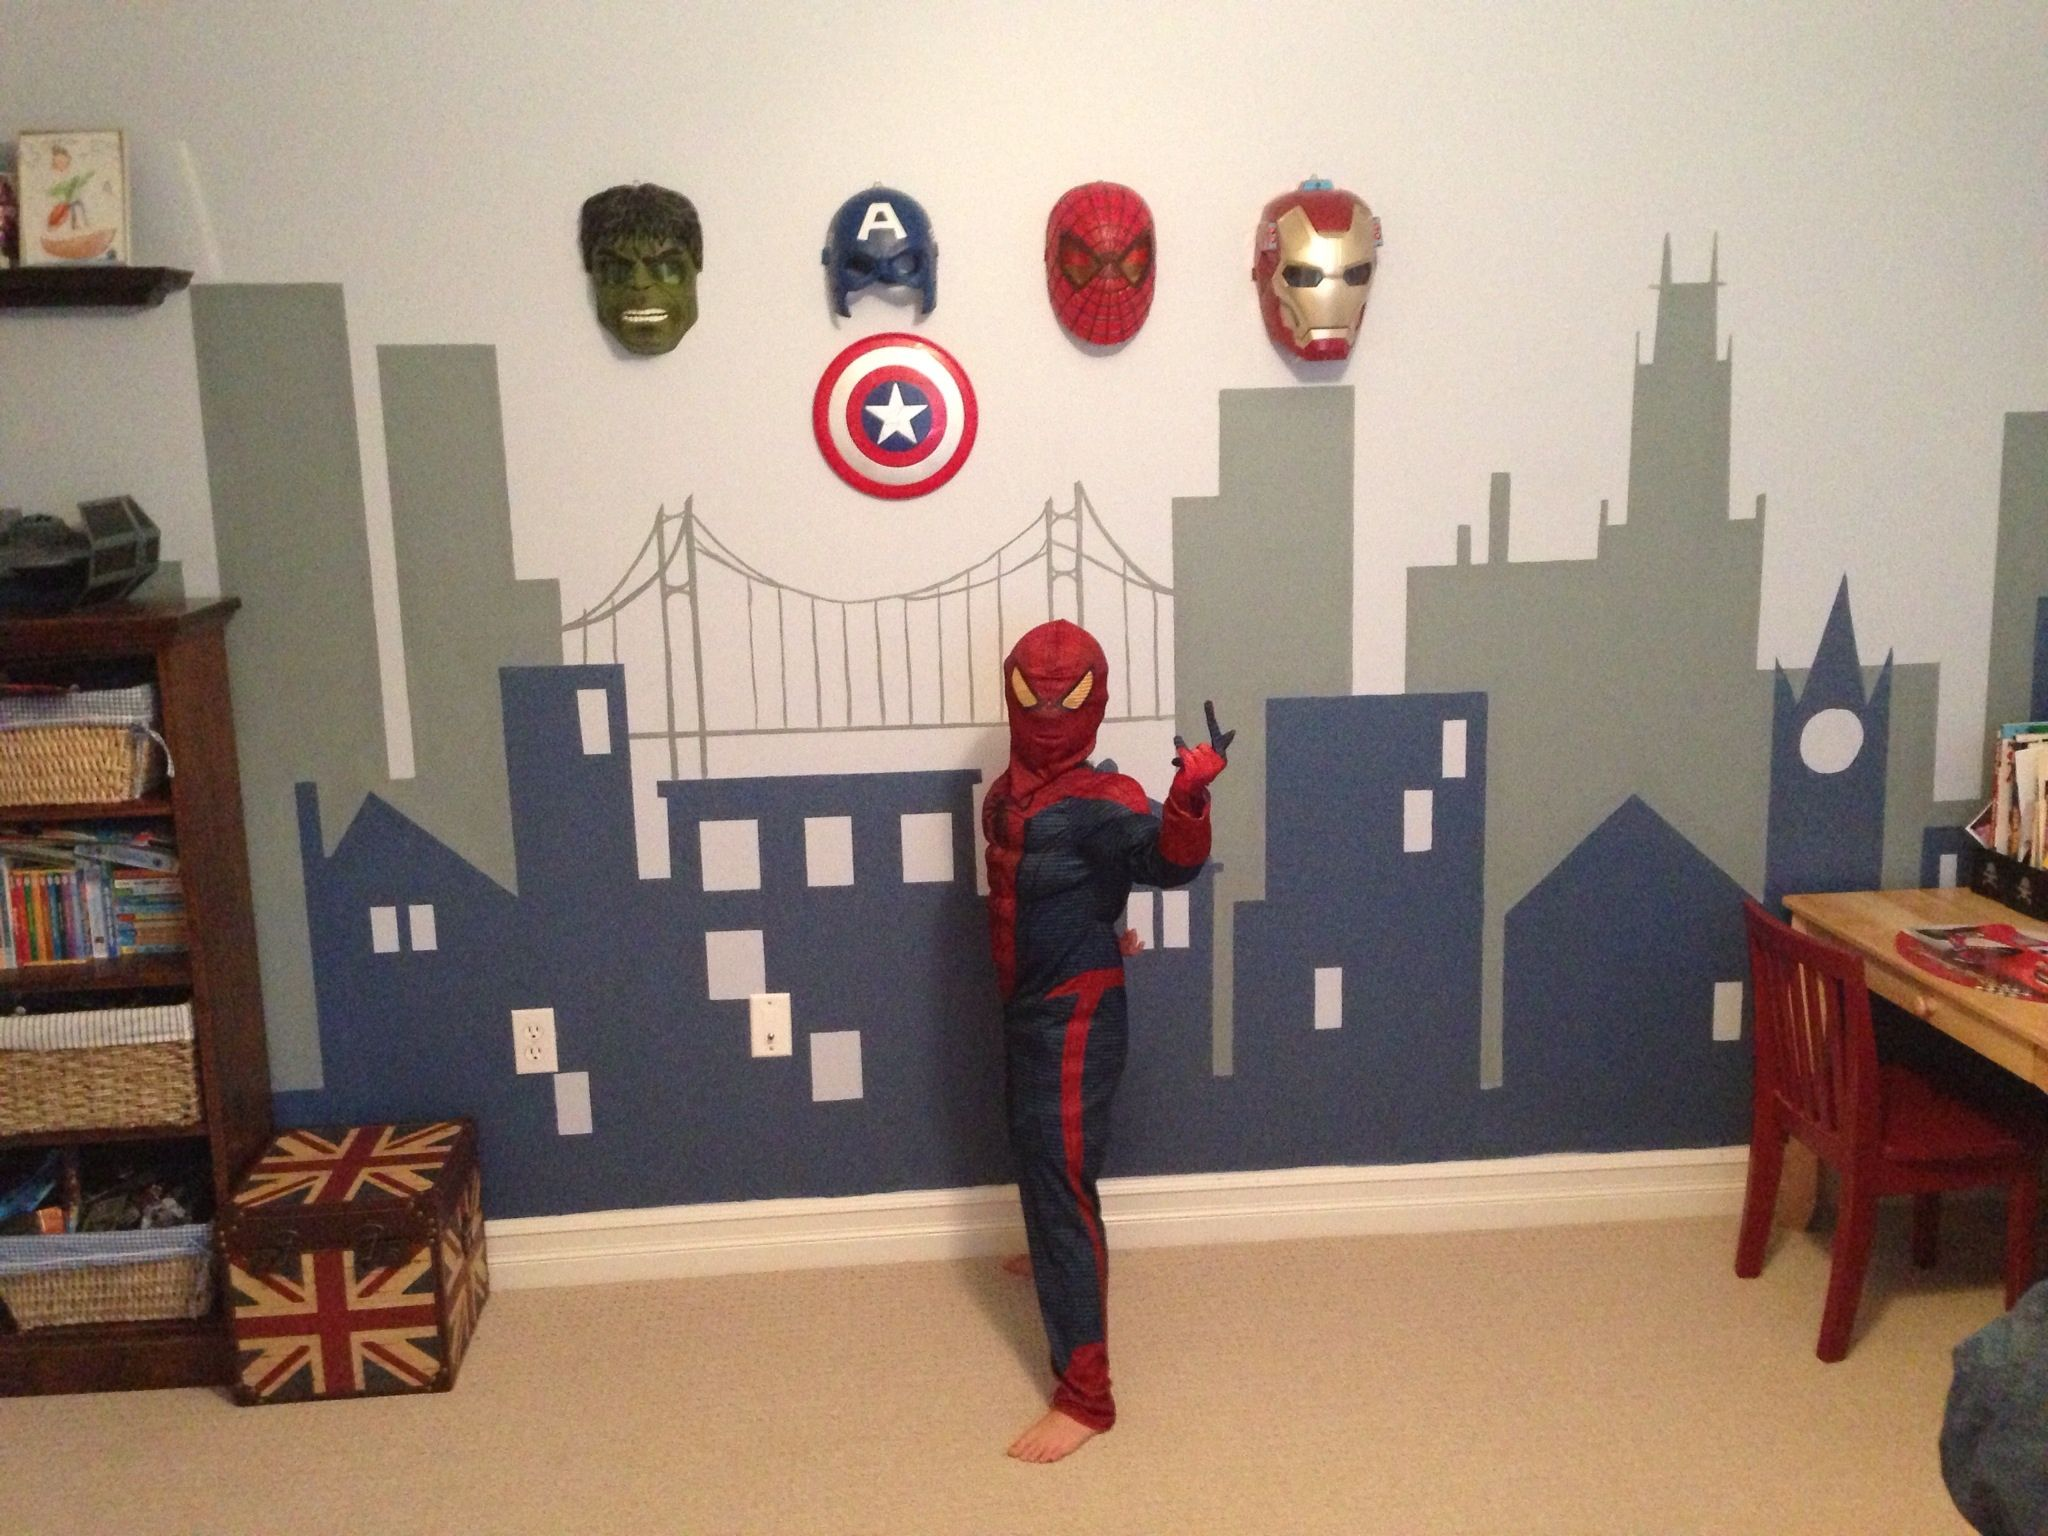 I like the idea of hanging the masks on the wall for Draw with jazza mural